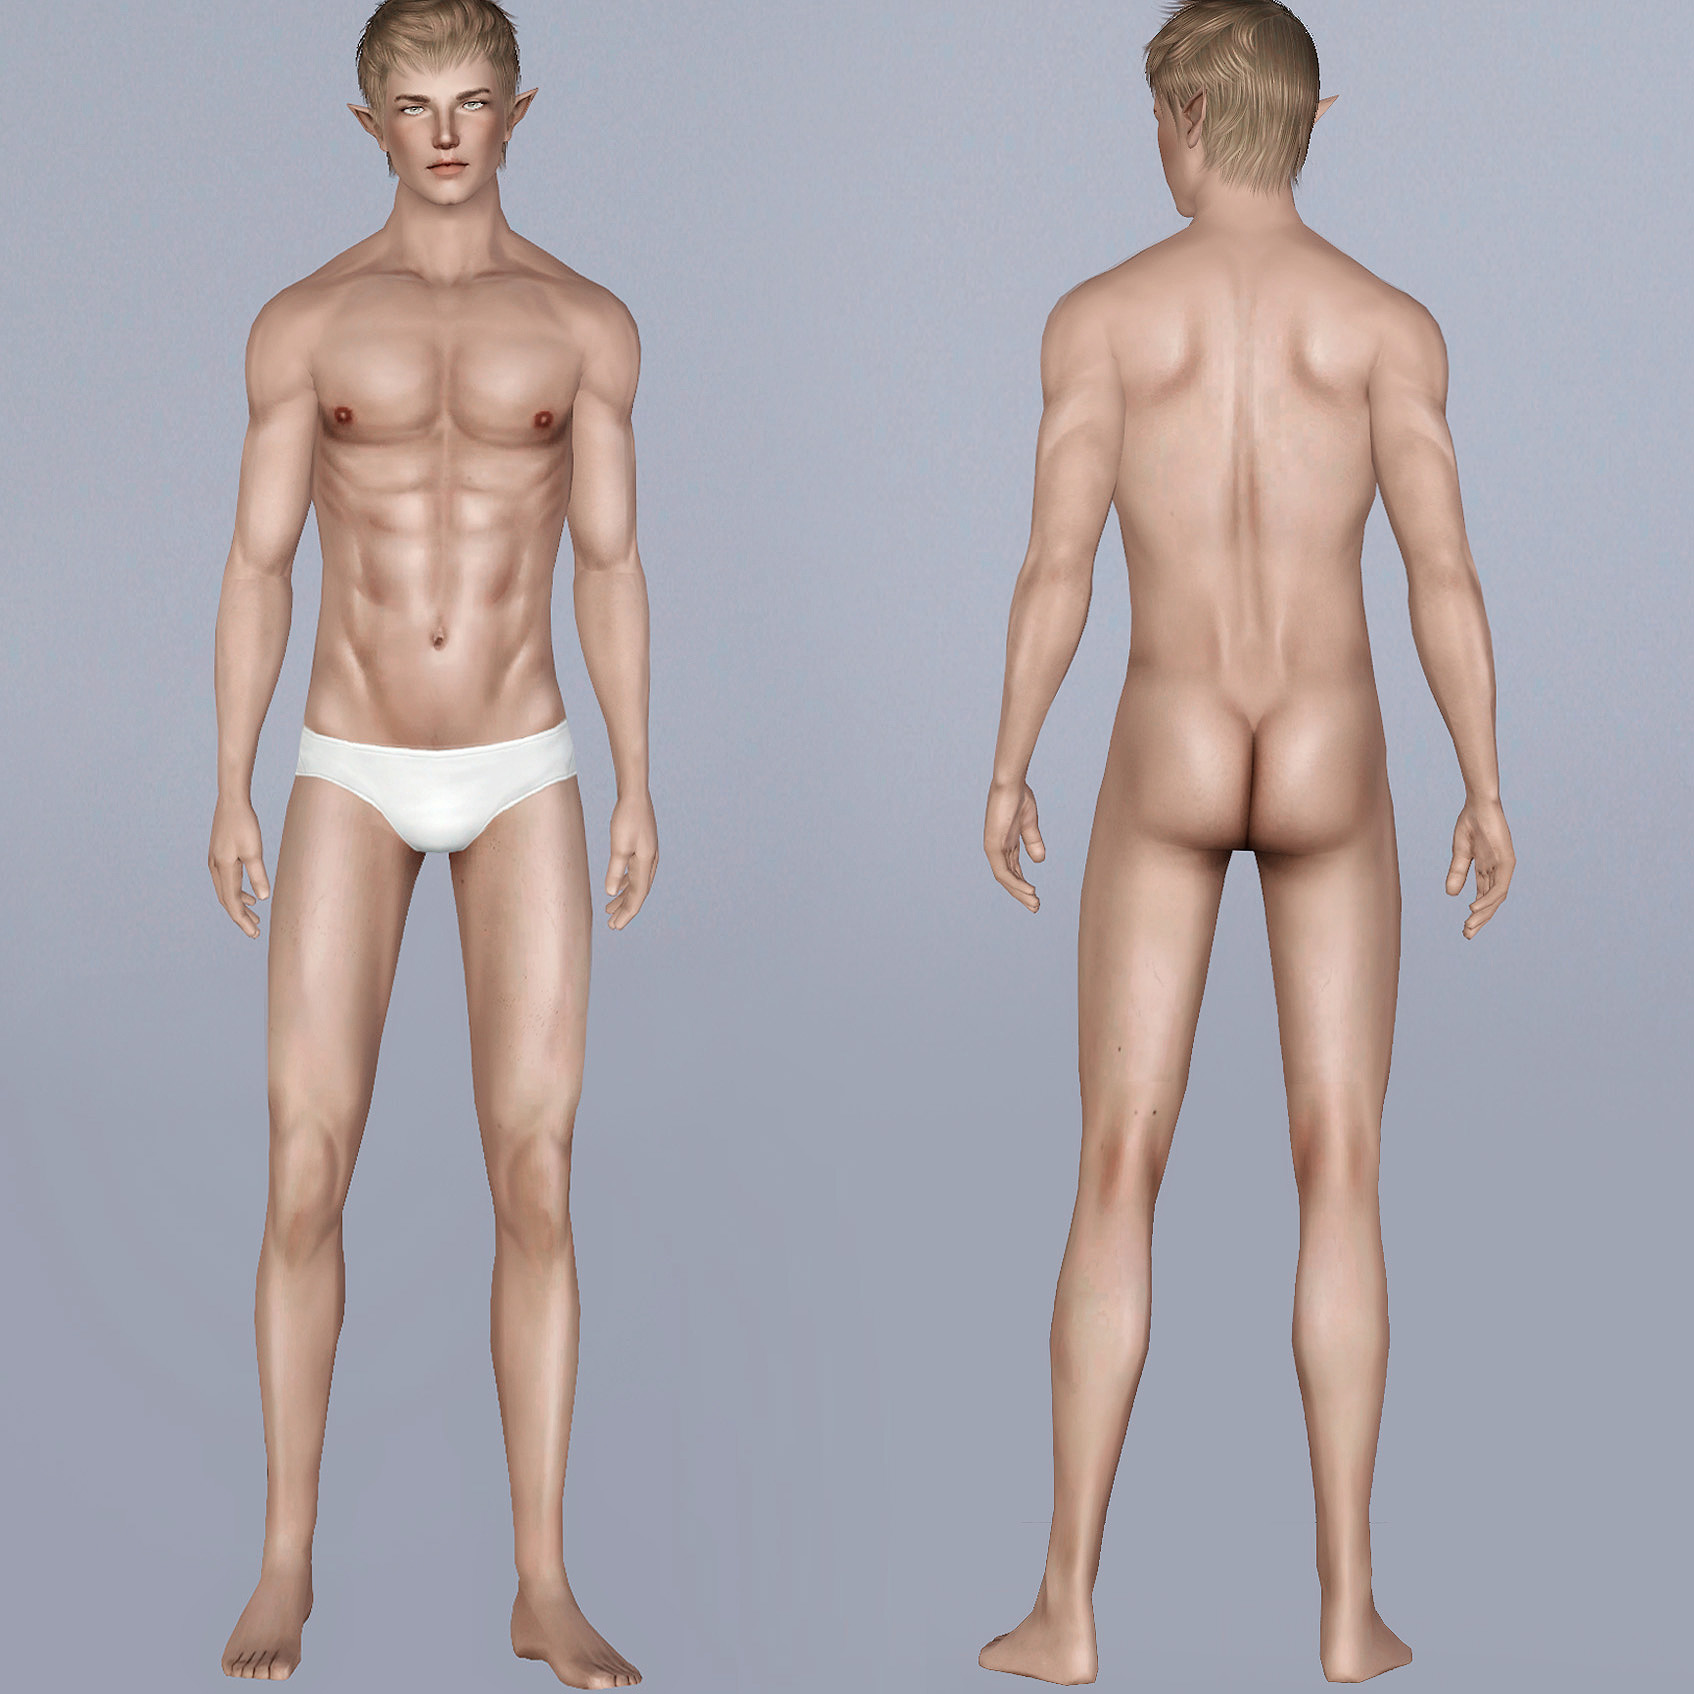 The sims 2 naked male skins download naked movies